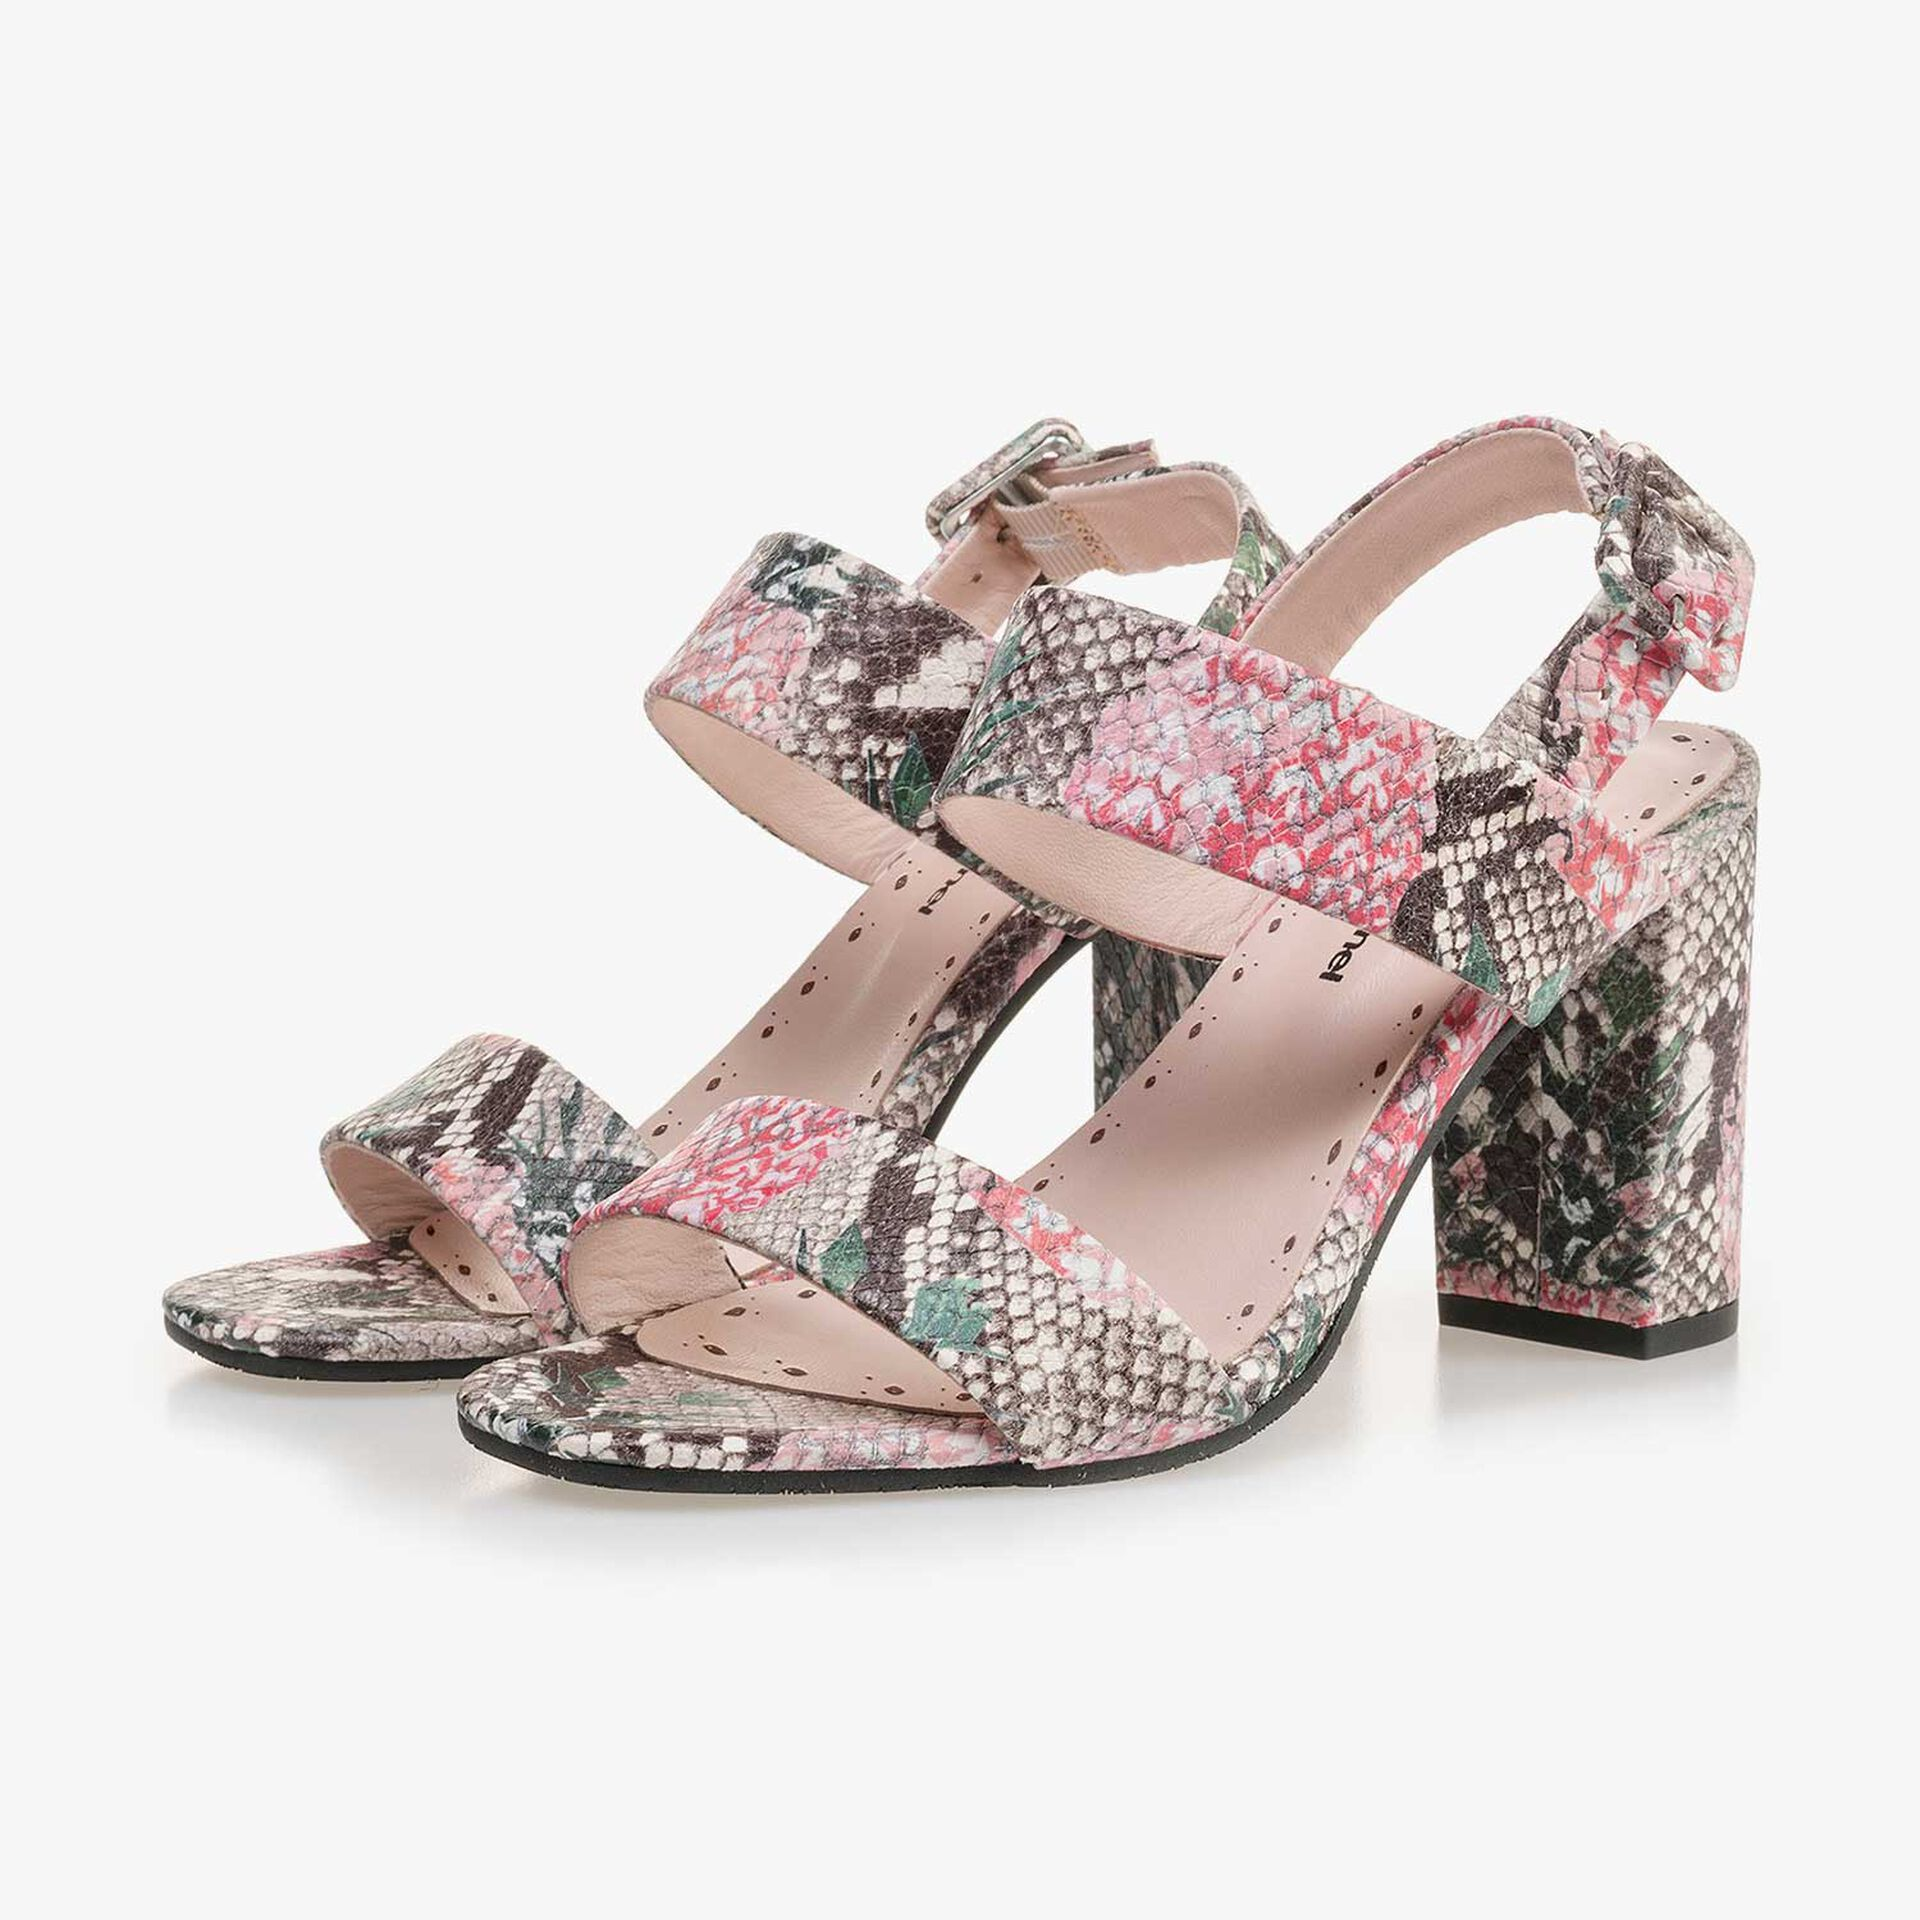 Multi-coloured leather sandal with printed motif